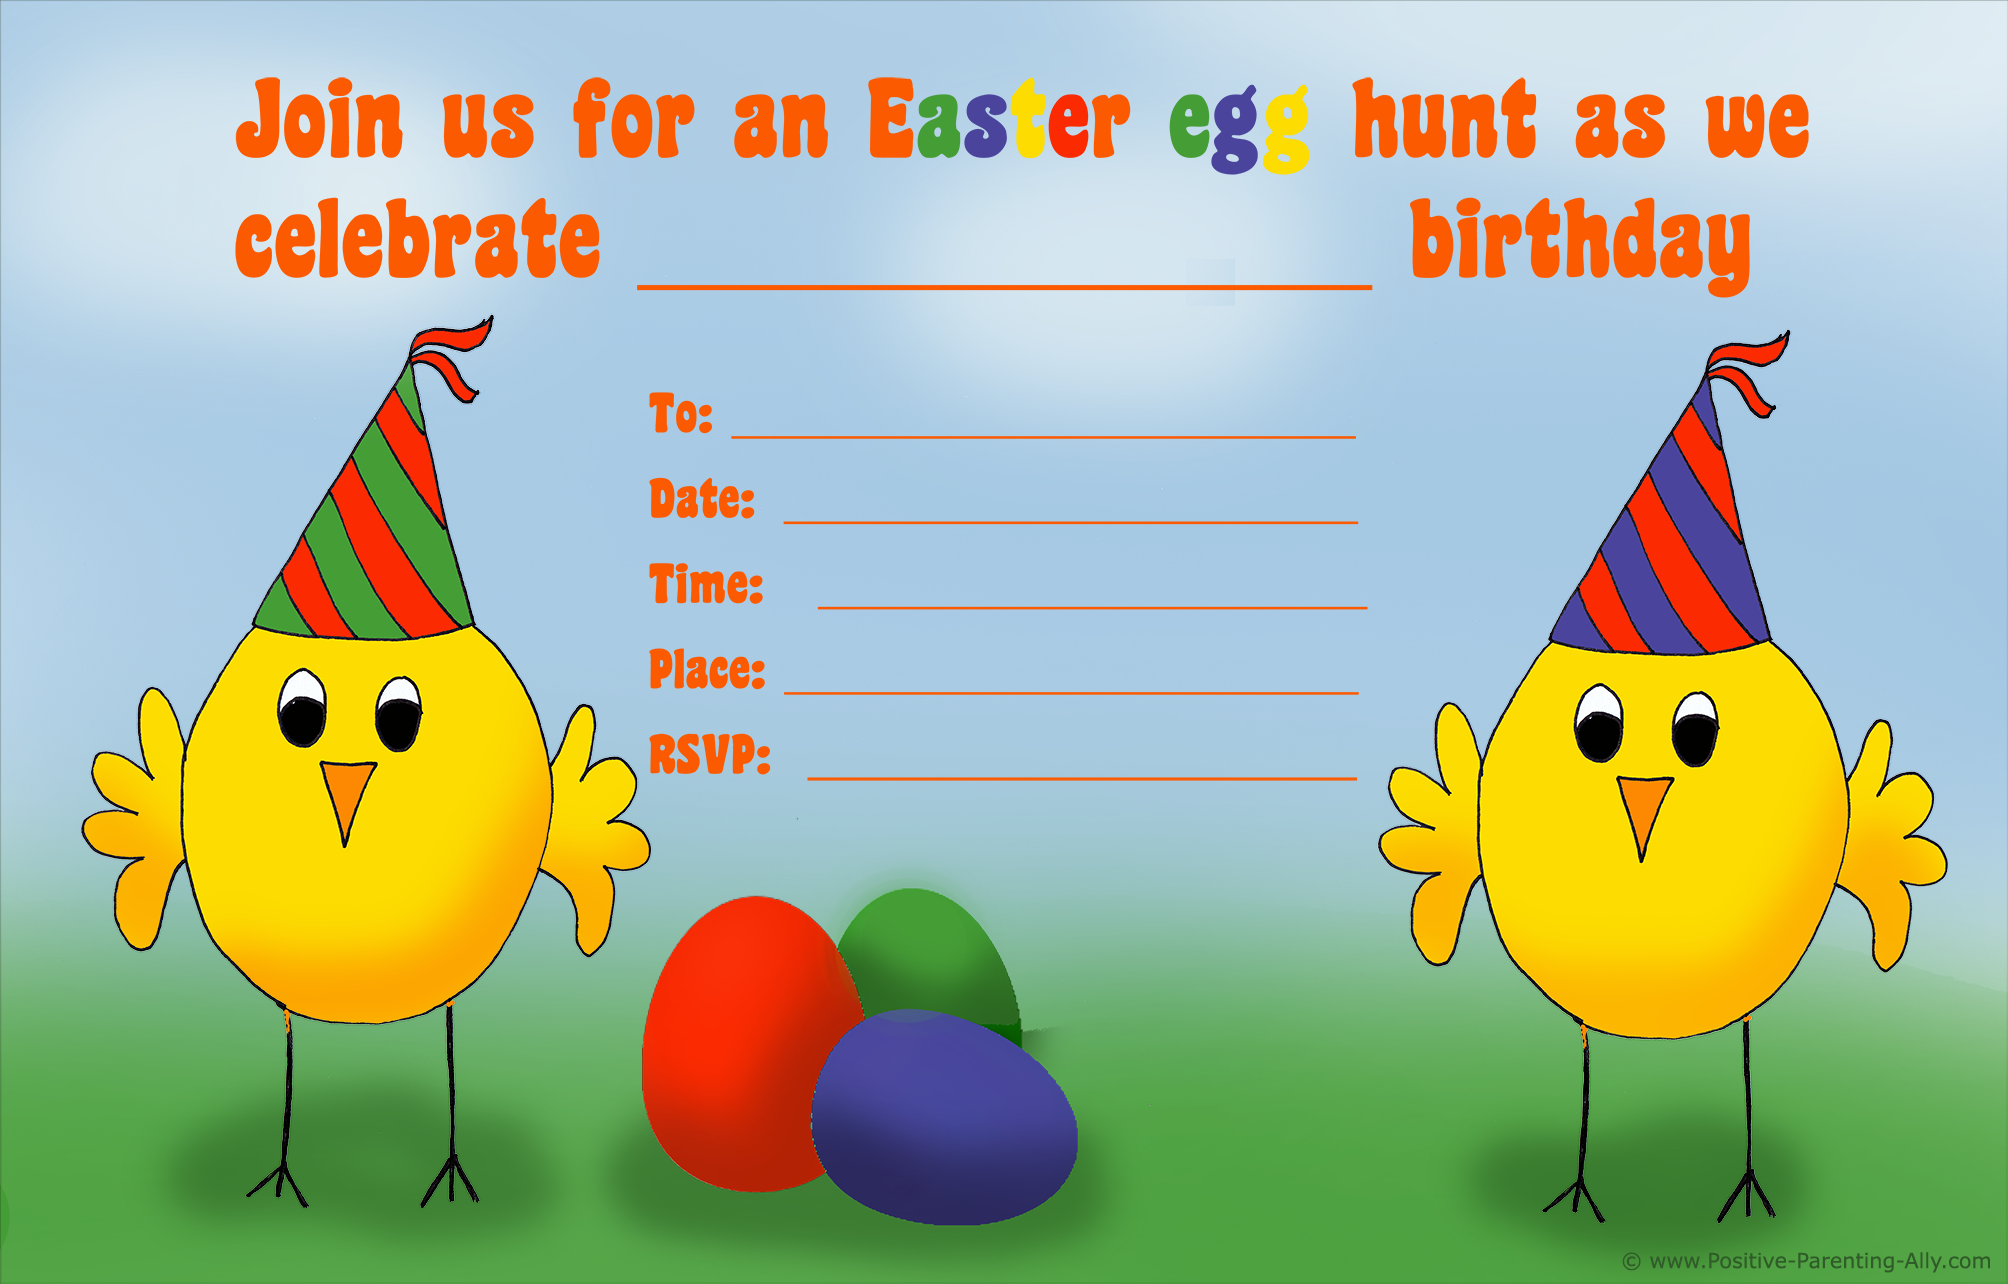 Easter egg hunt birthday invitation with chickens.